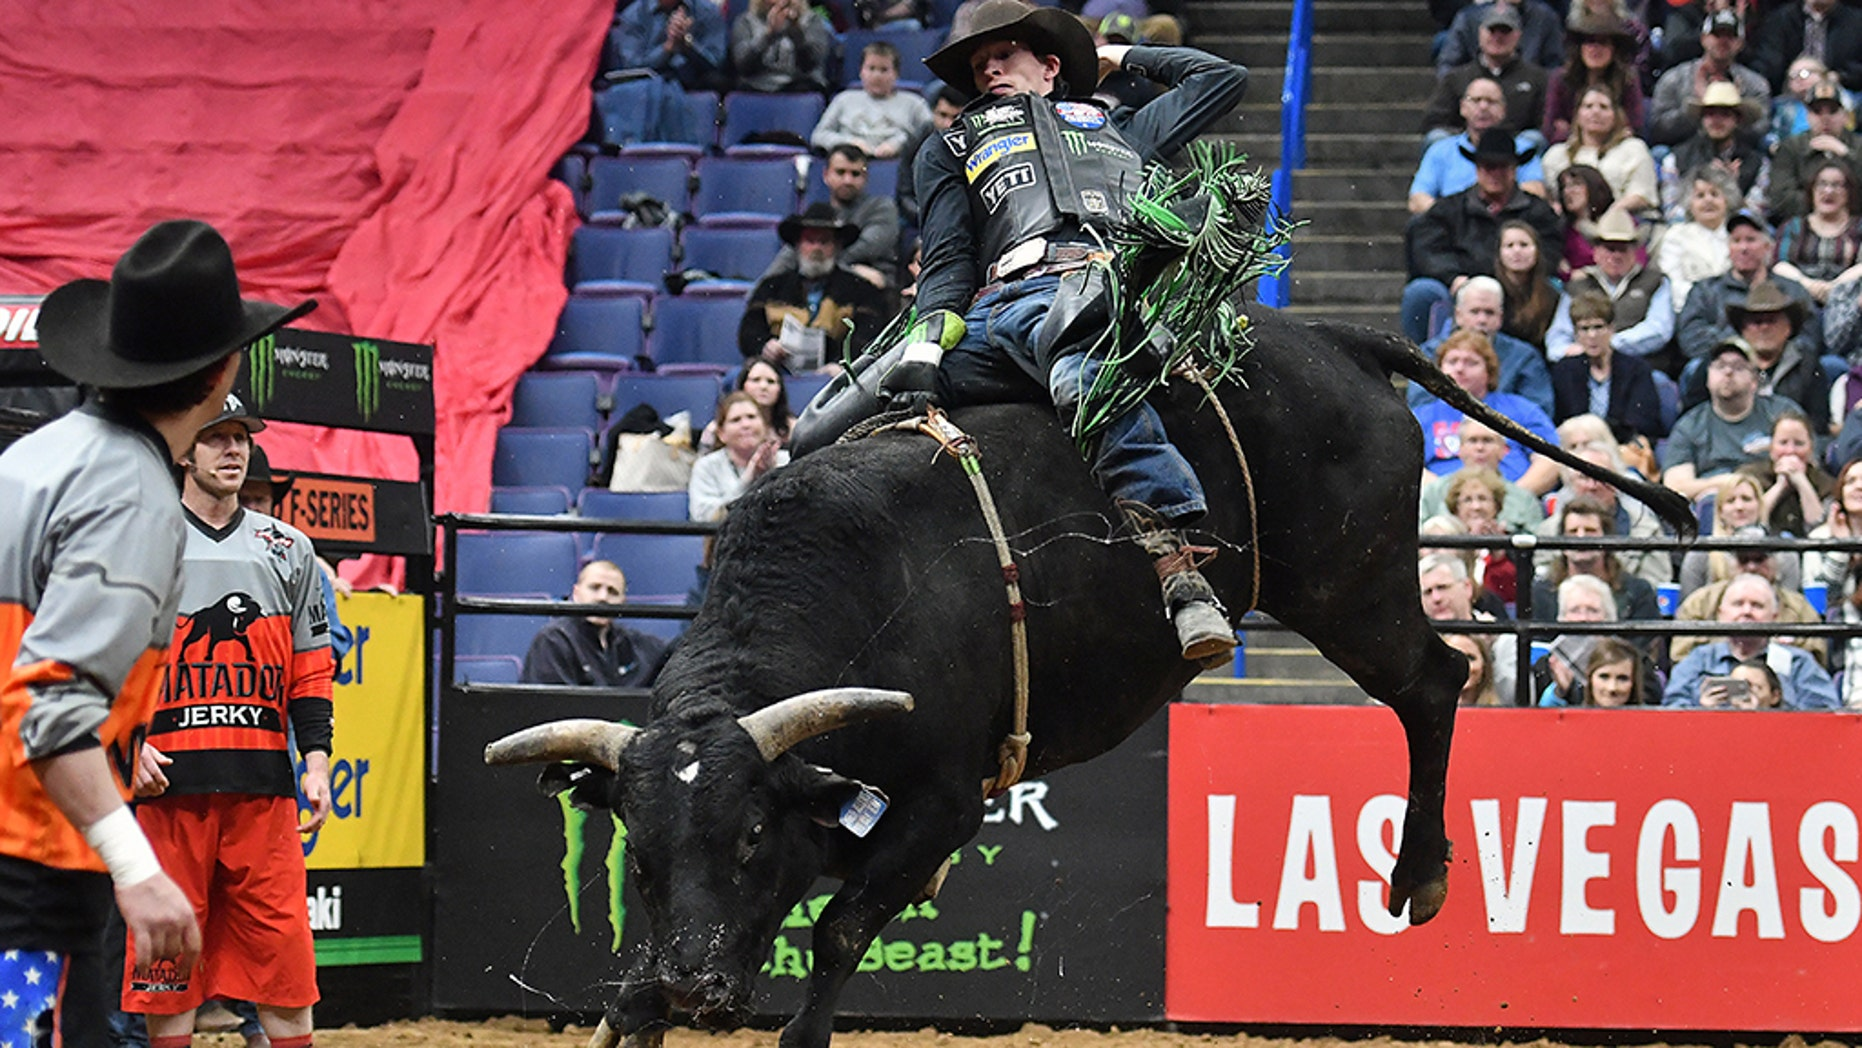 Professional Bull Rider 25 Dies After Being Injured At